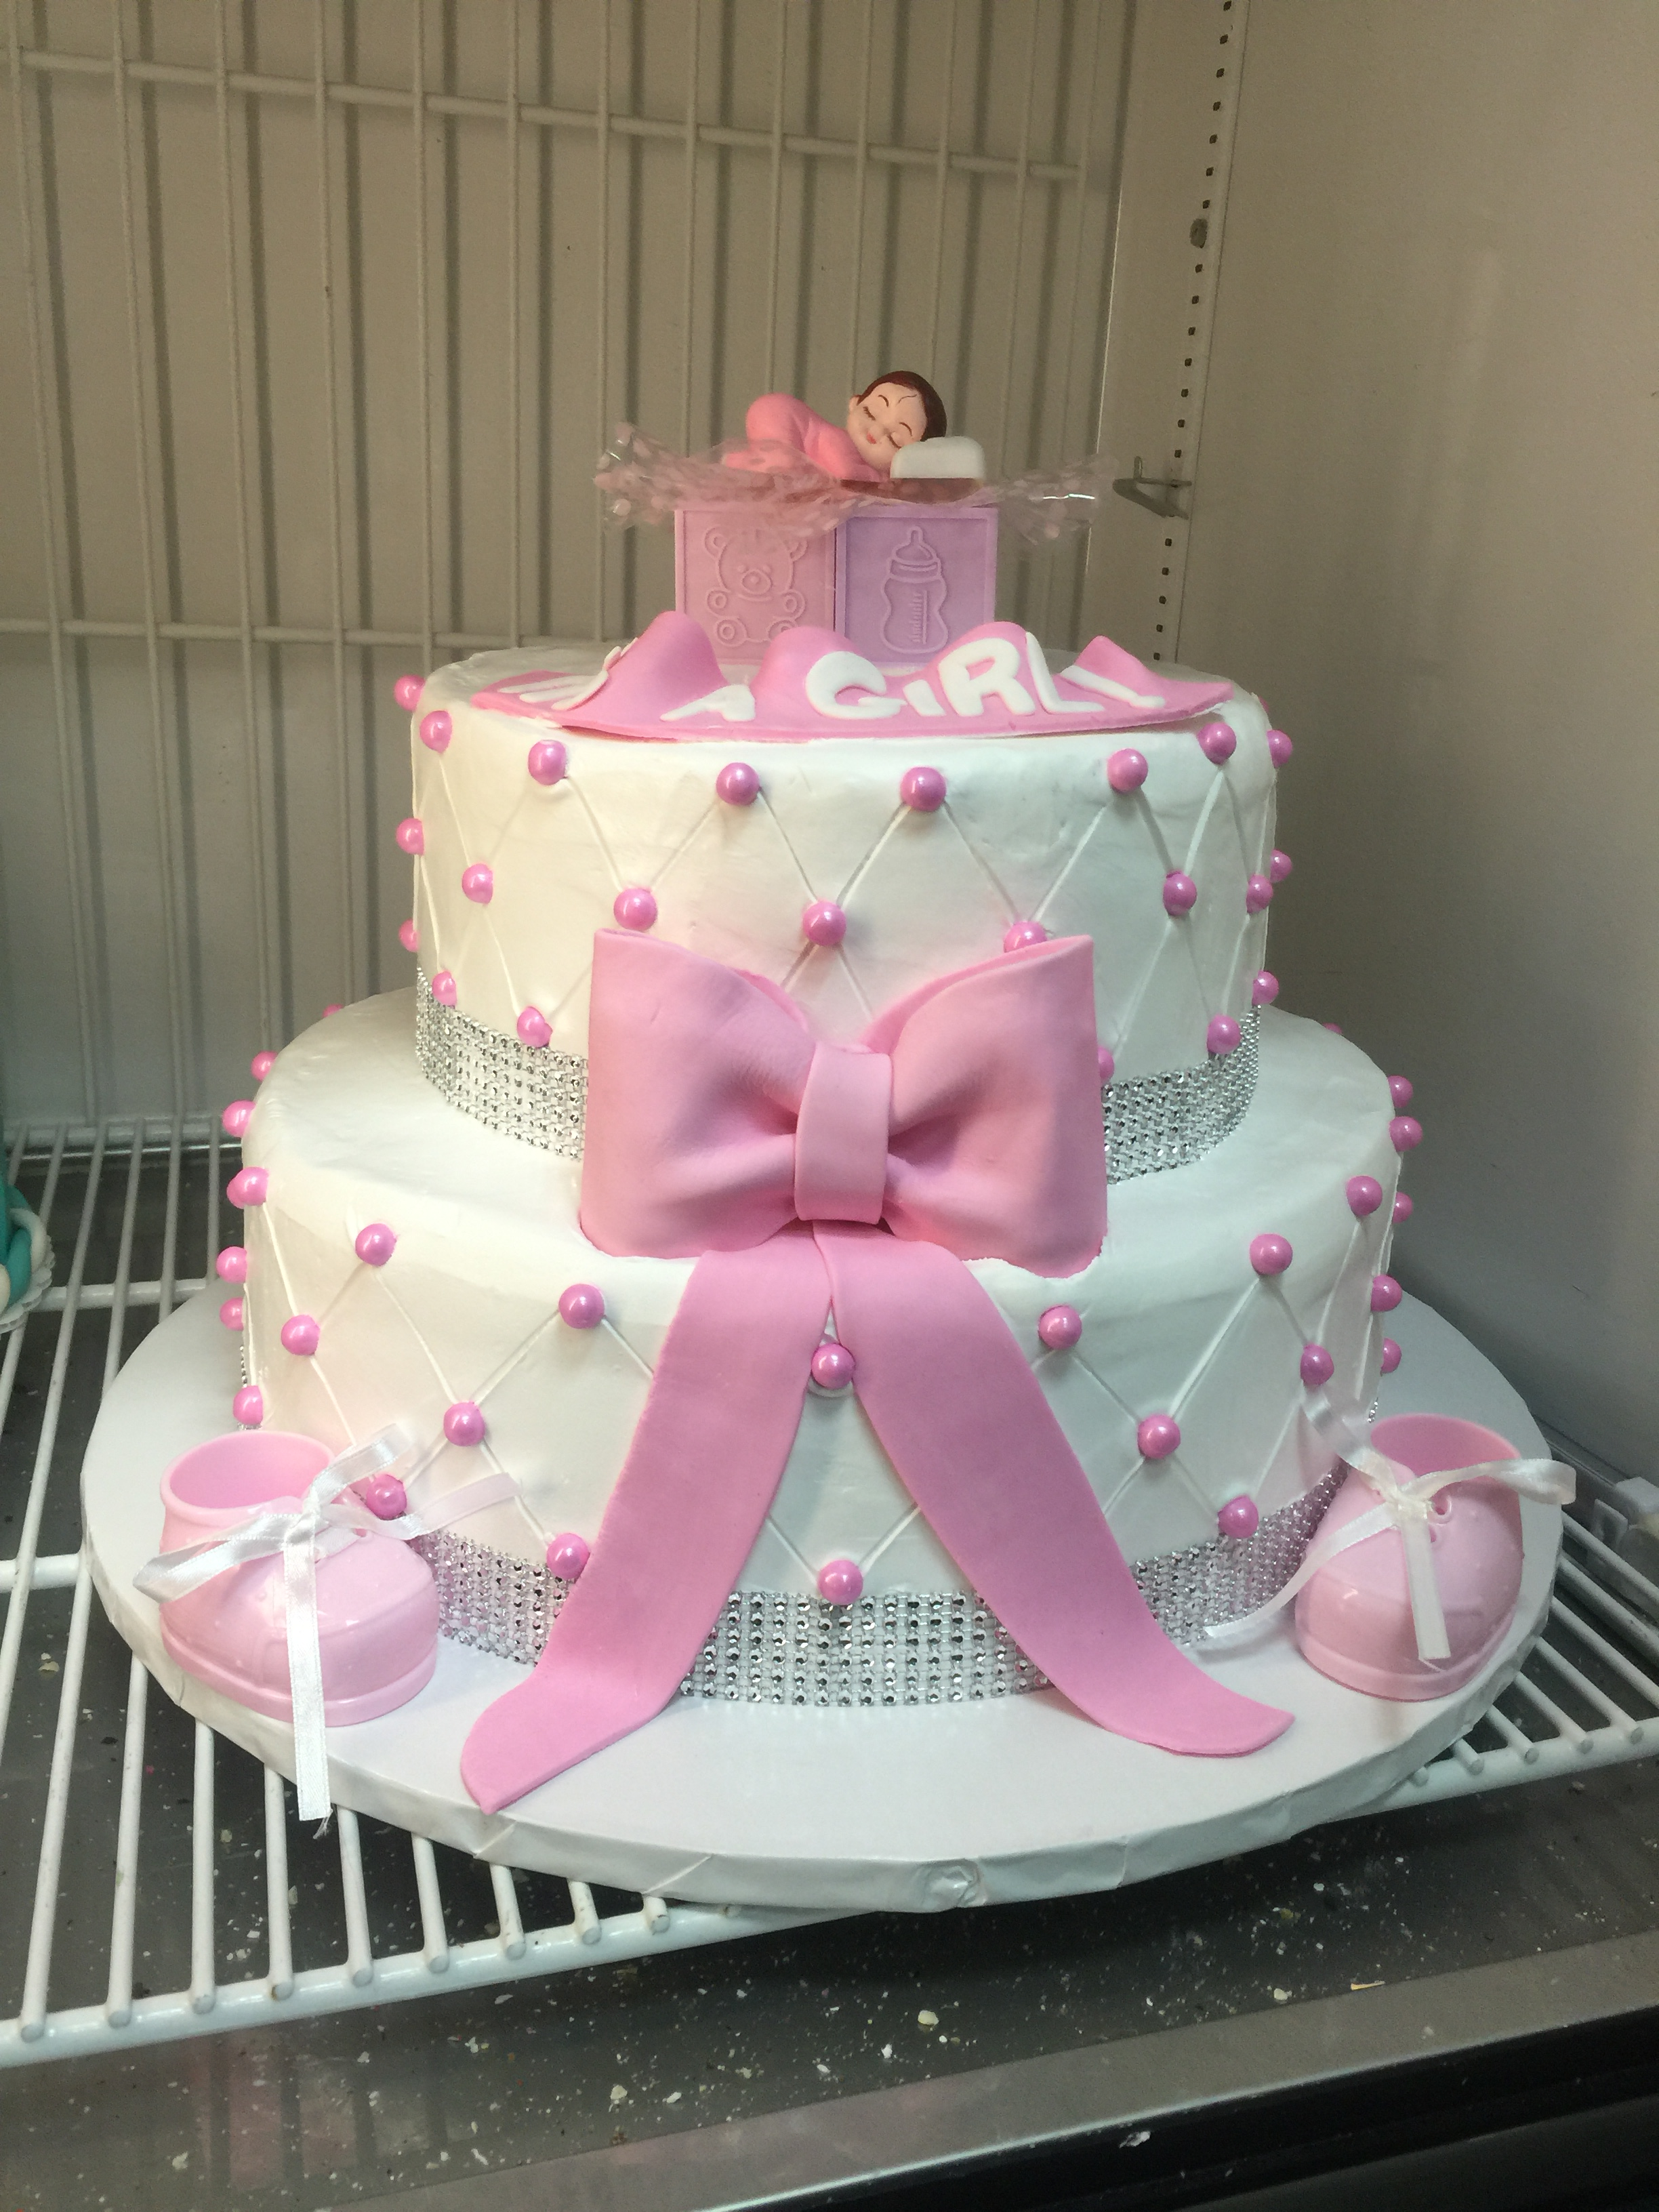 Two Tiered Pink Baby Shower Cake